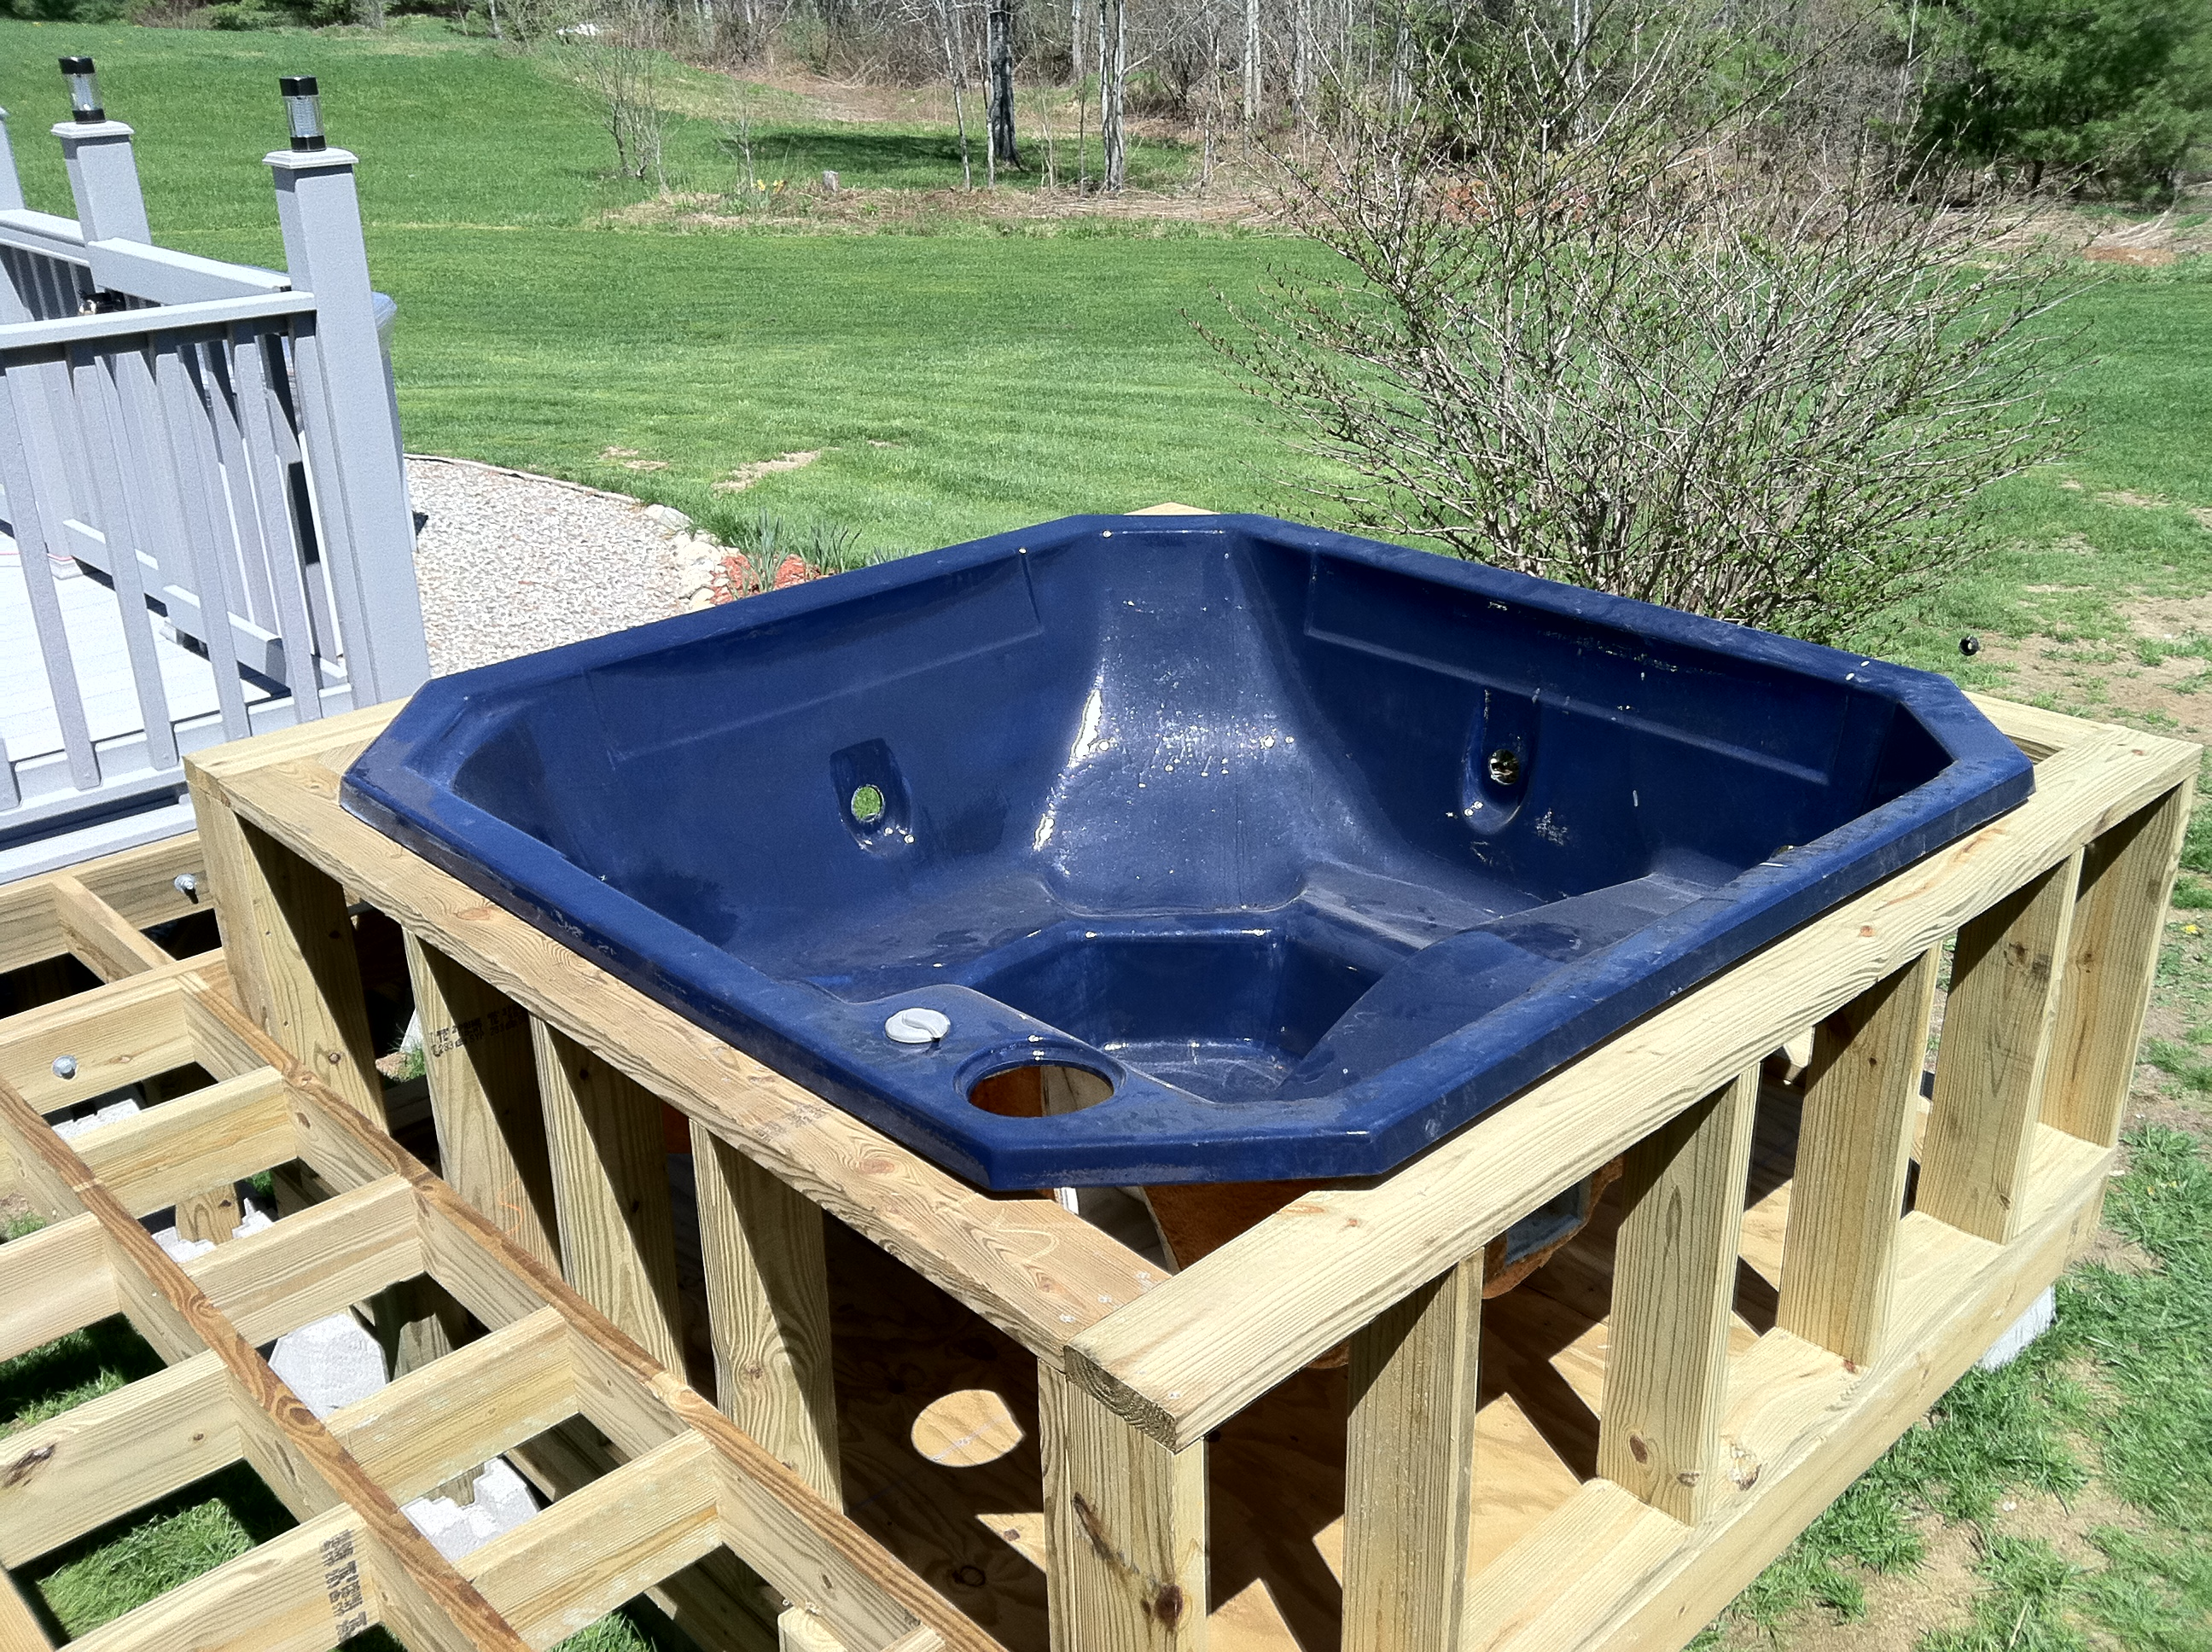 Jacuzzi Pool Repairs Hot Tub Walls And Walkway Supports Repair And